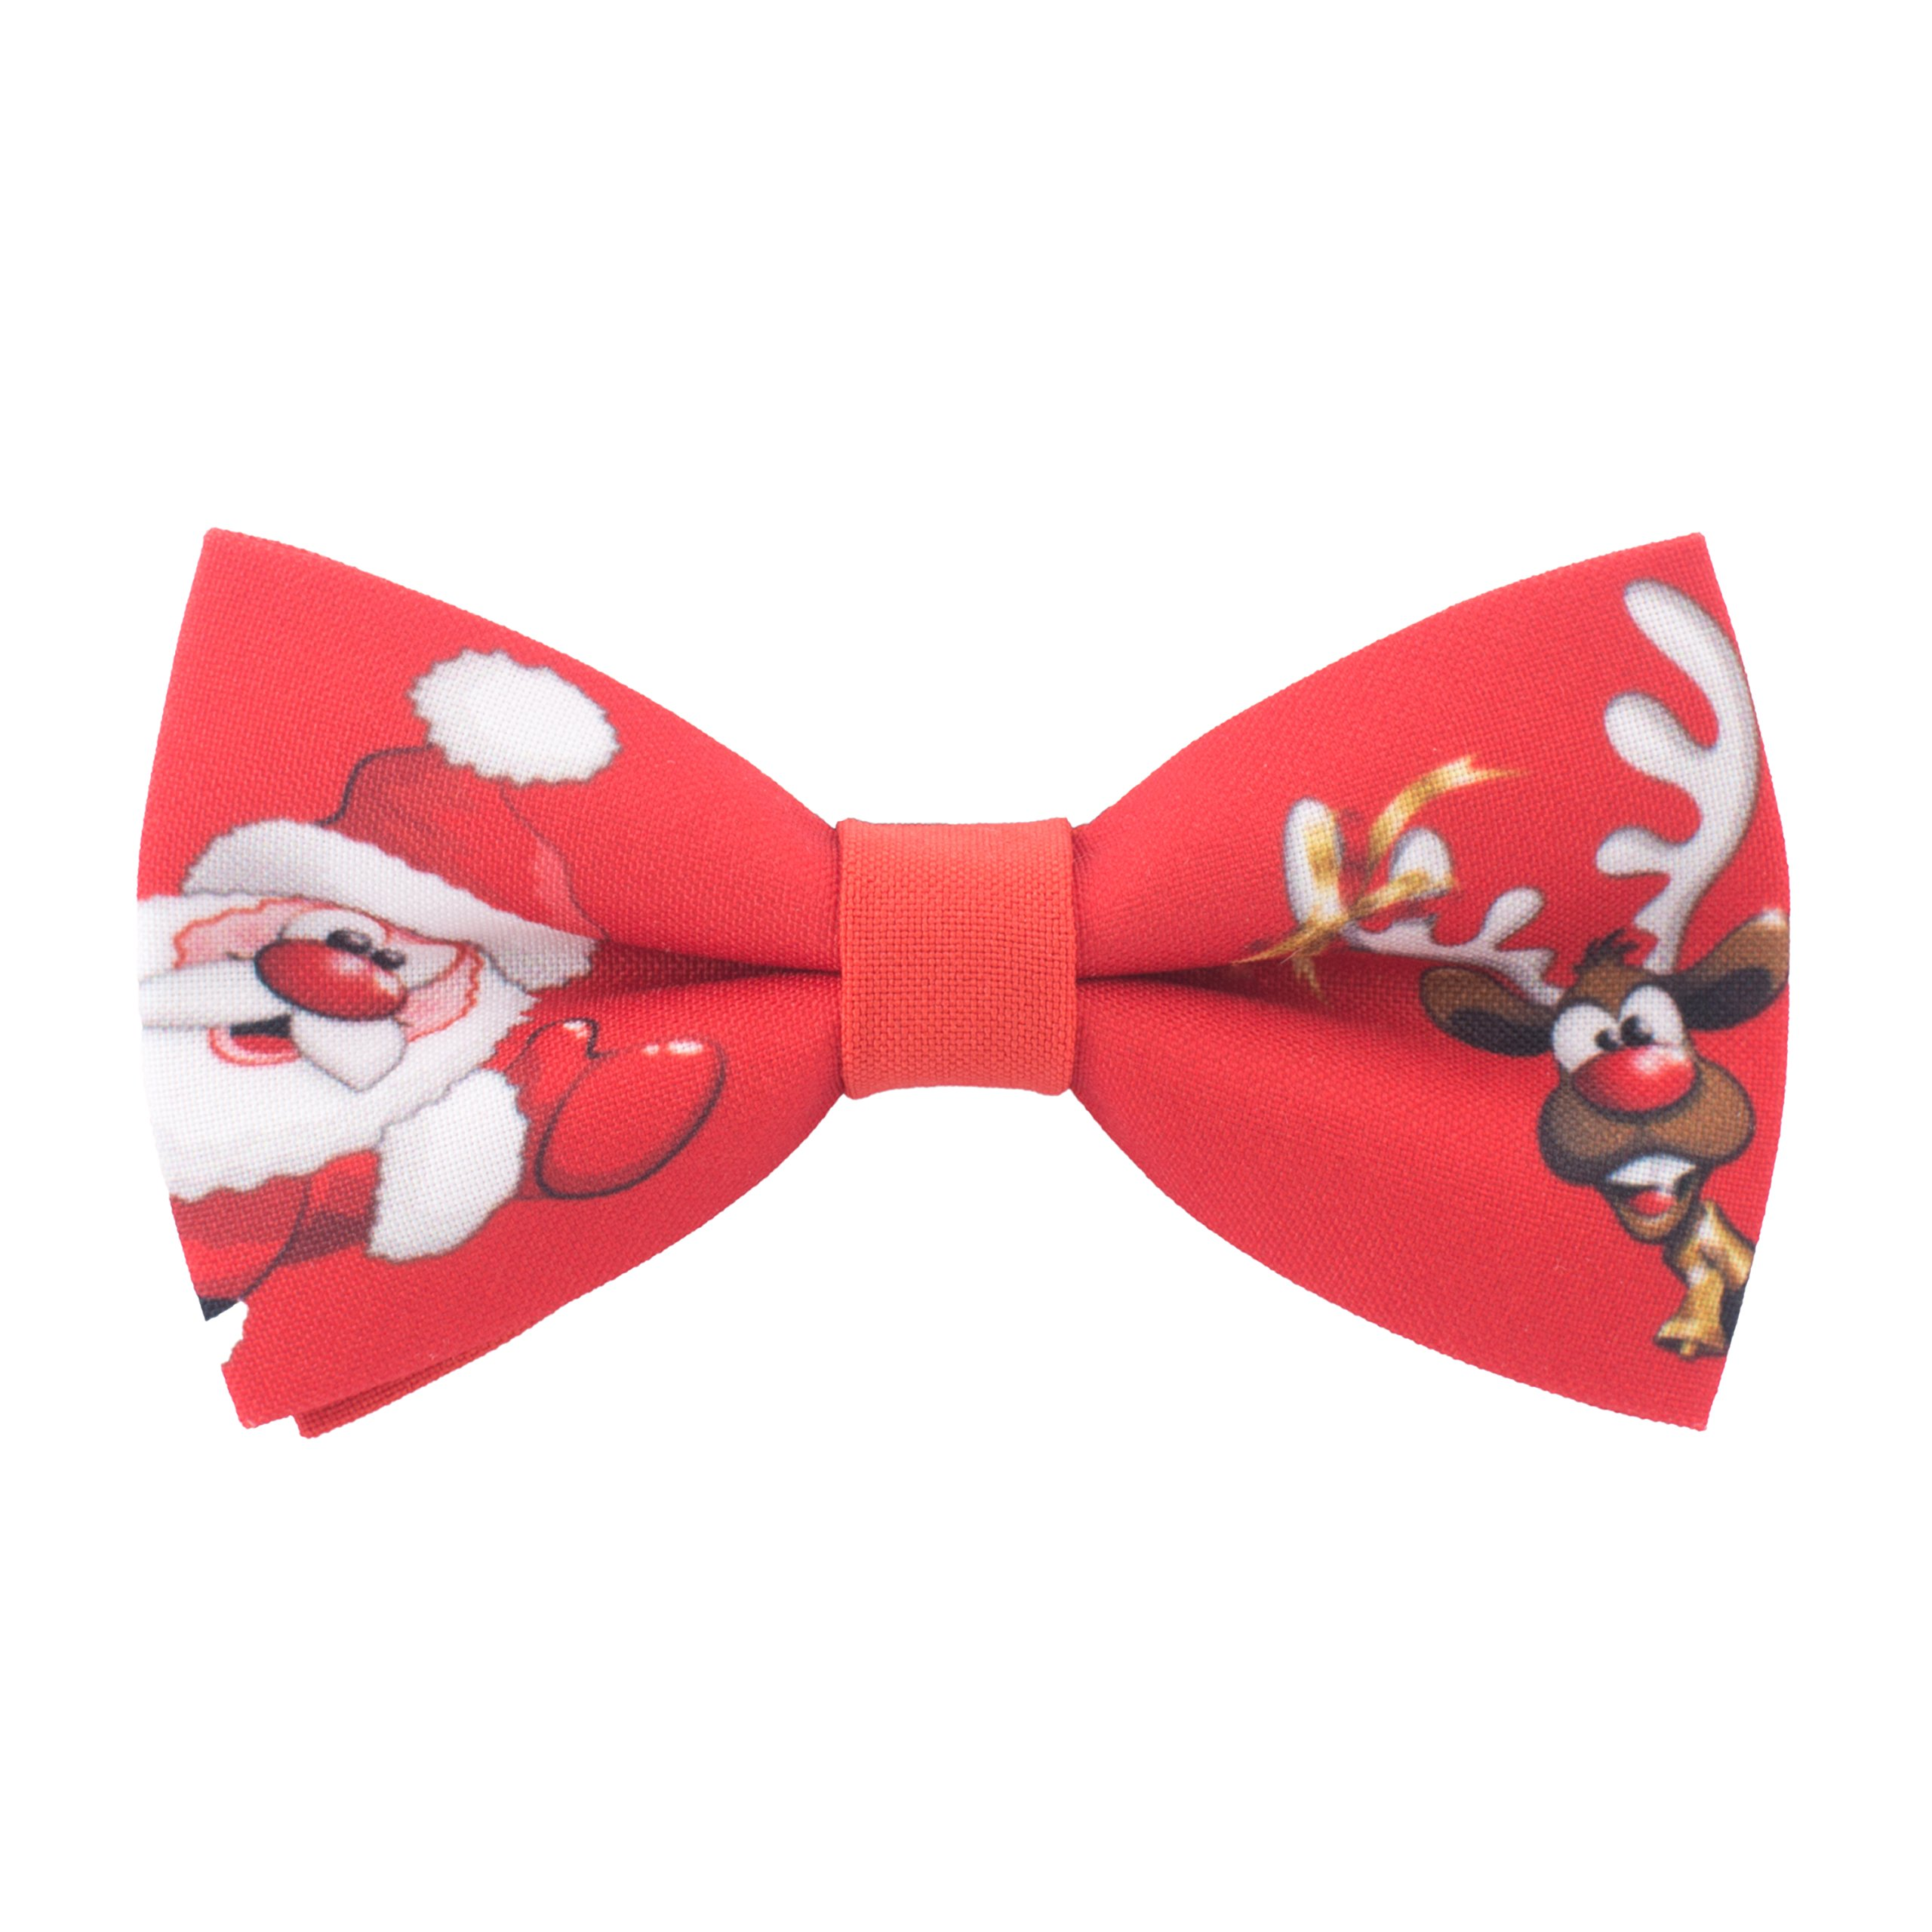 288a6e648ca8 Best Rated in Men's Novelty Bow Ties & Helpful Customer Reviews ...